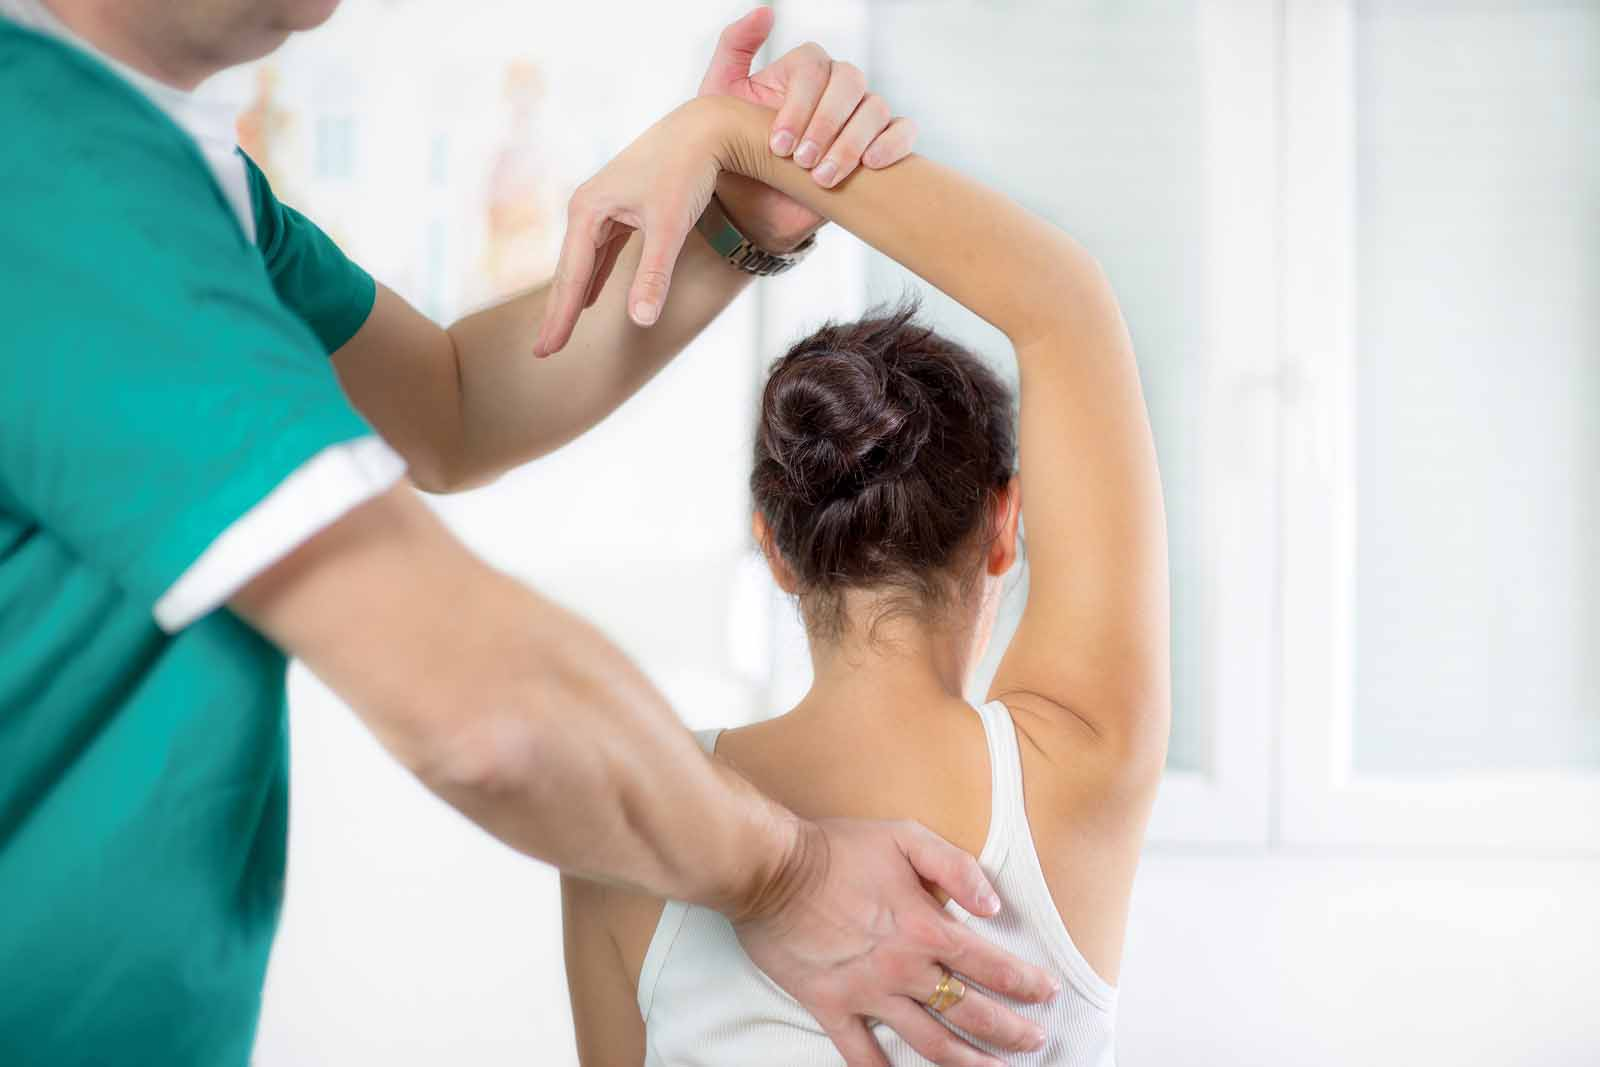 We take great pride in providing the finest chiropractic care to our patients; call us today to learn more about services with our McMurray chiropractor!